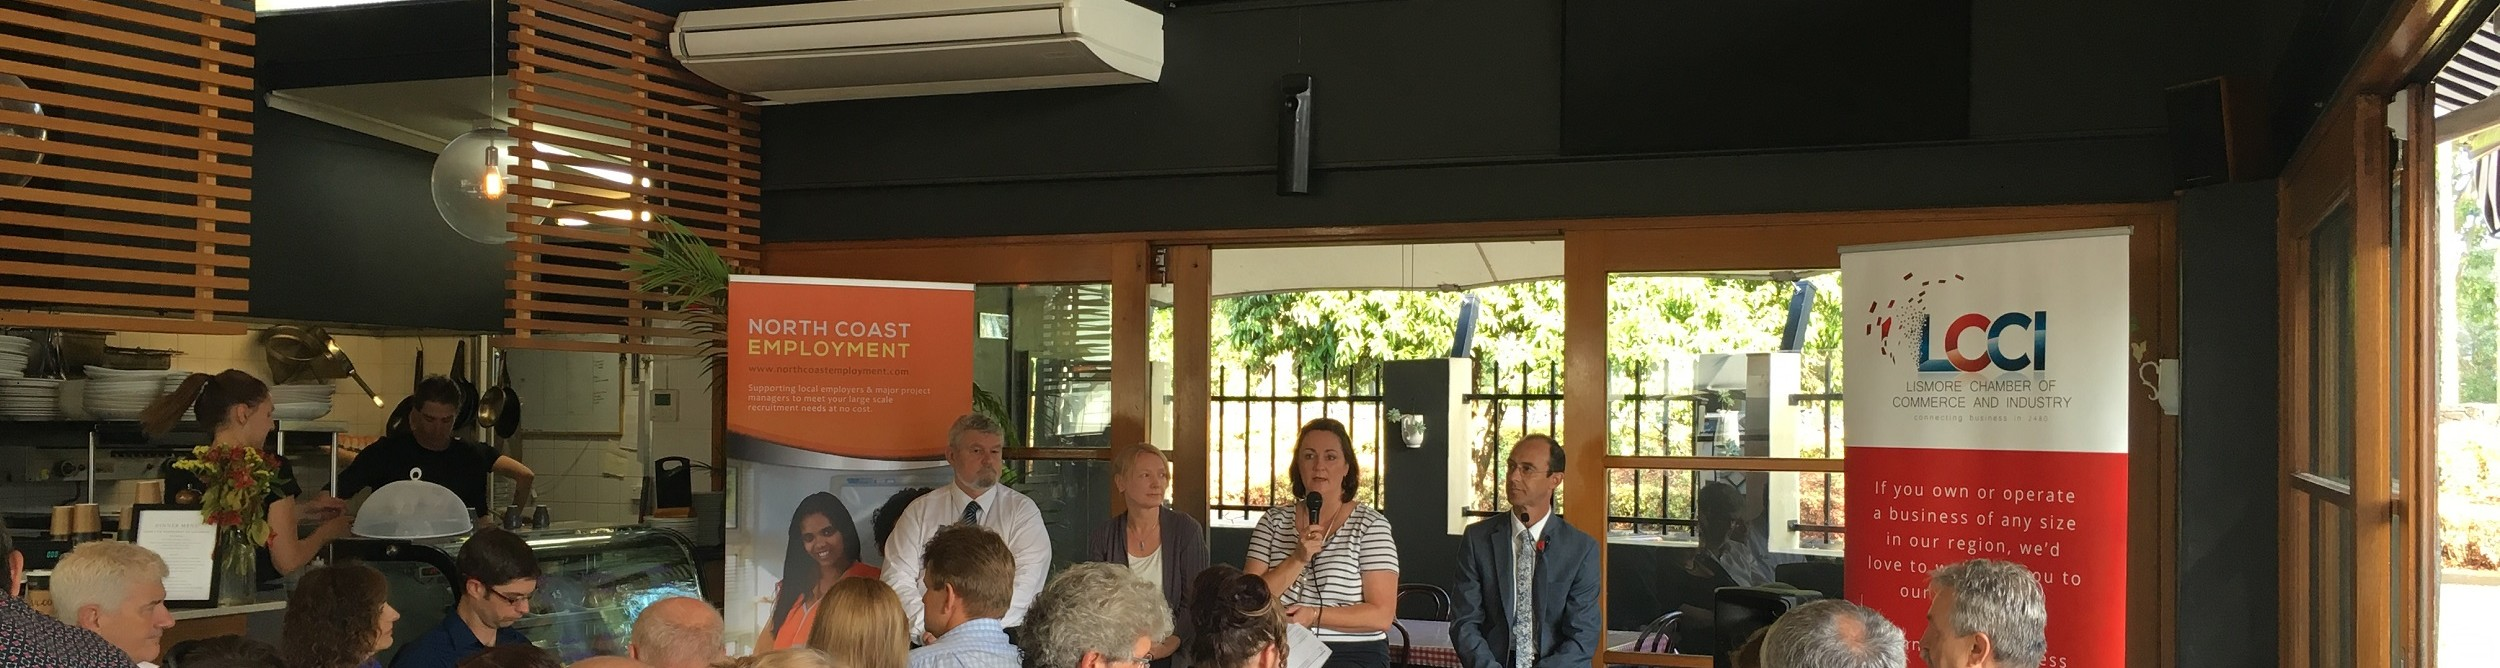 business breakfast lismore chamber of commerce and industry palate at the gallery